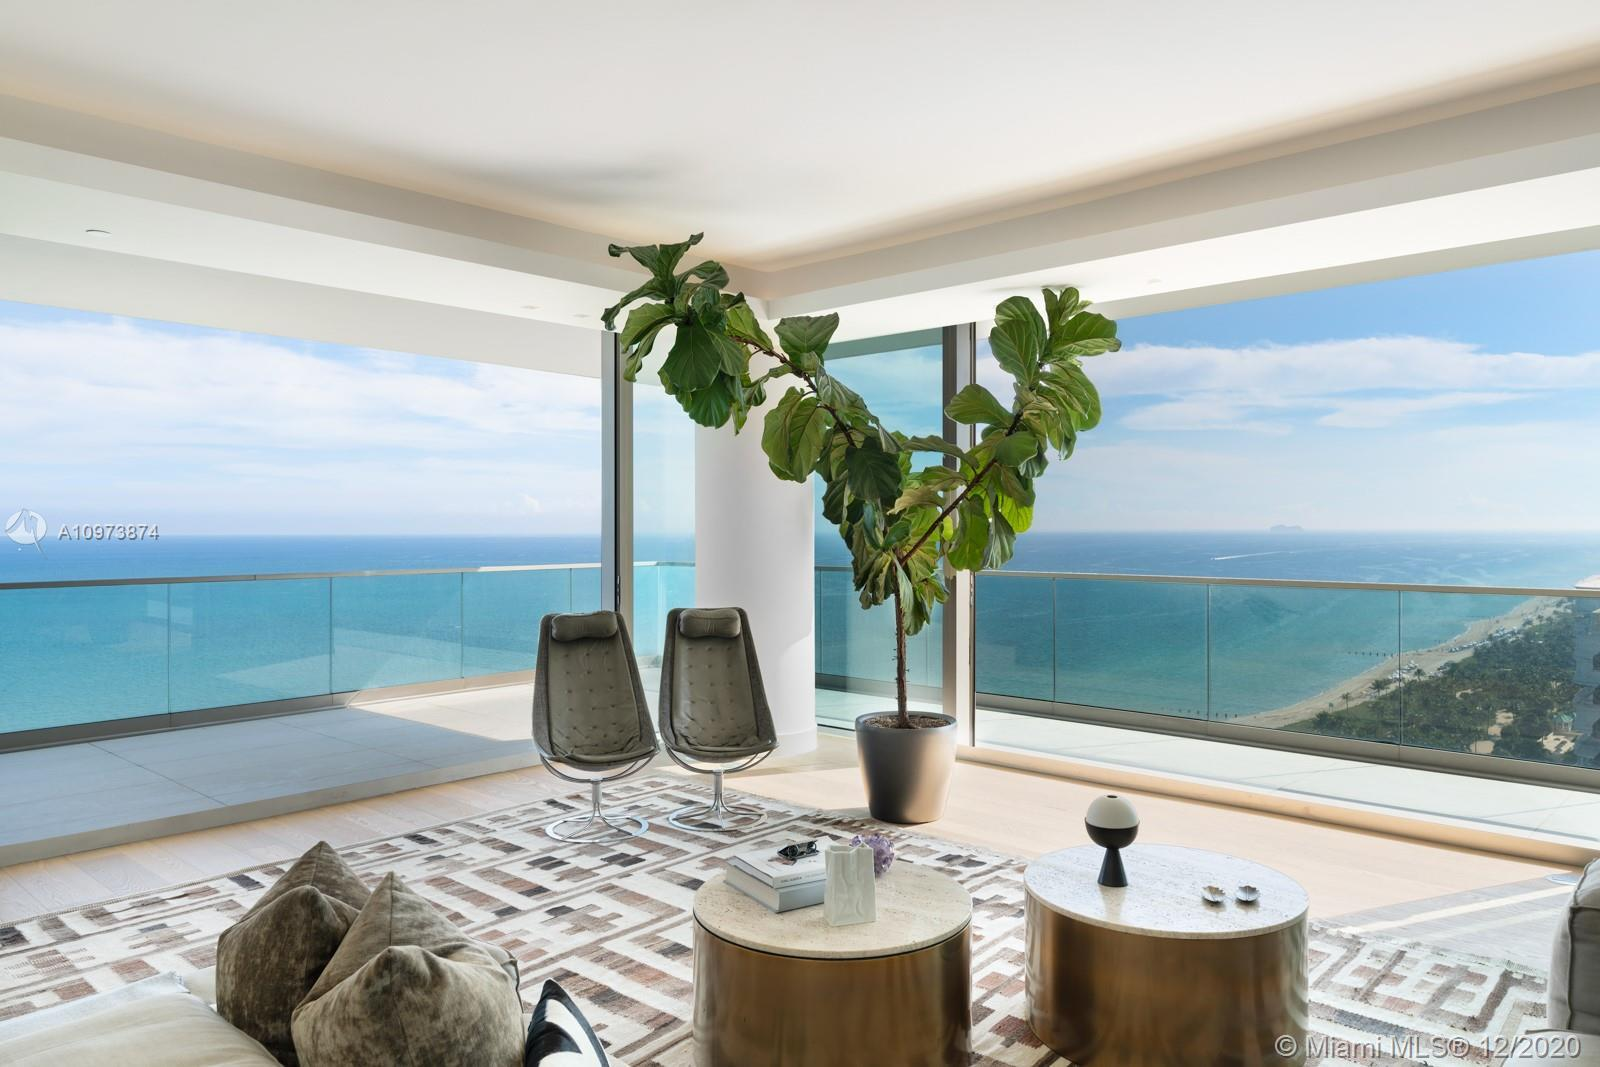 Step Inside With Me! An exquisite residence in the sky, 2001S is Oceana Bal Harbour's Flagship Floor